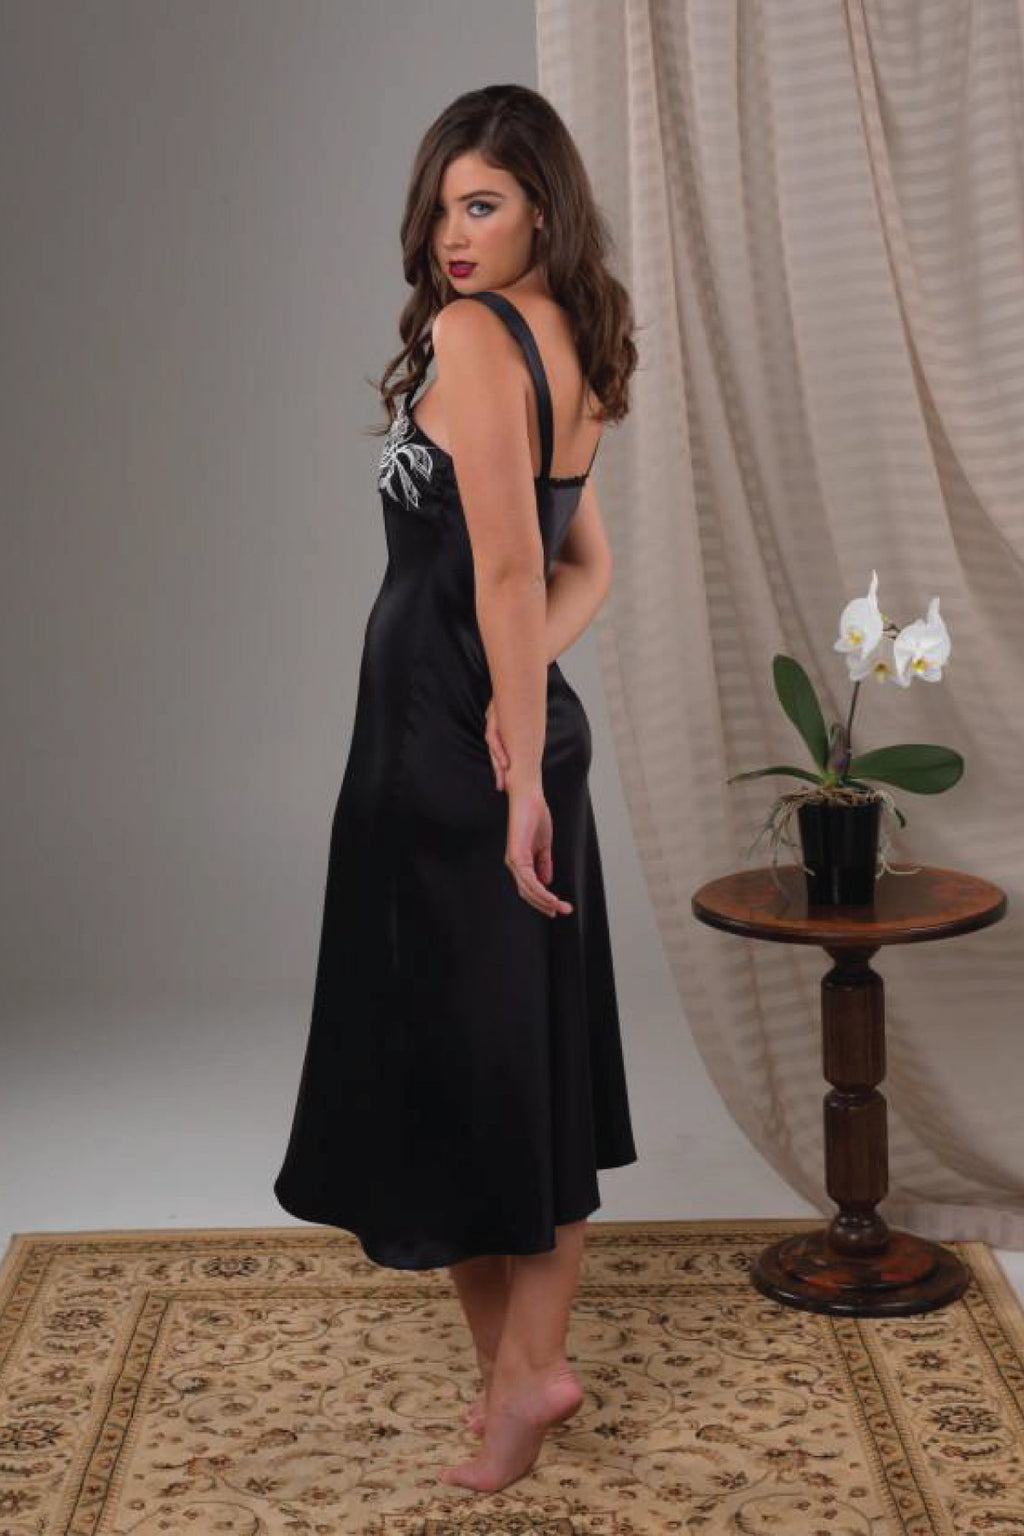 Orchid Nightgown Sleepwear The Fashion Advocate ethical Australian fashion designer boutique Melbourne sustainable clothes